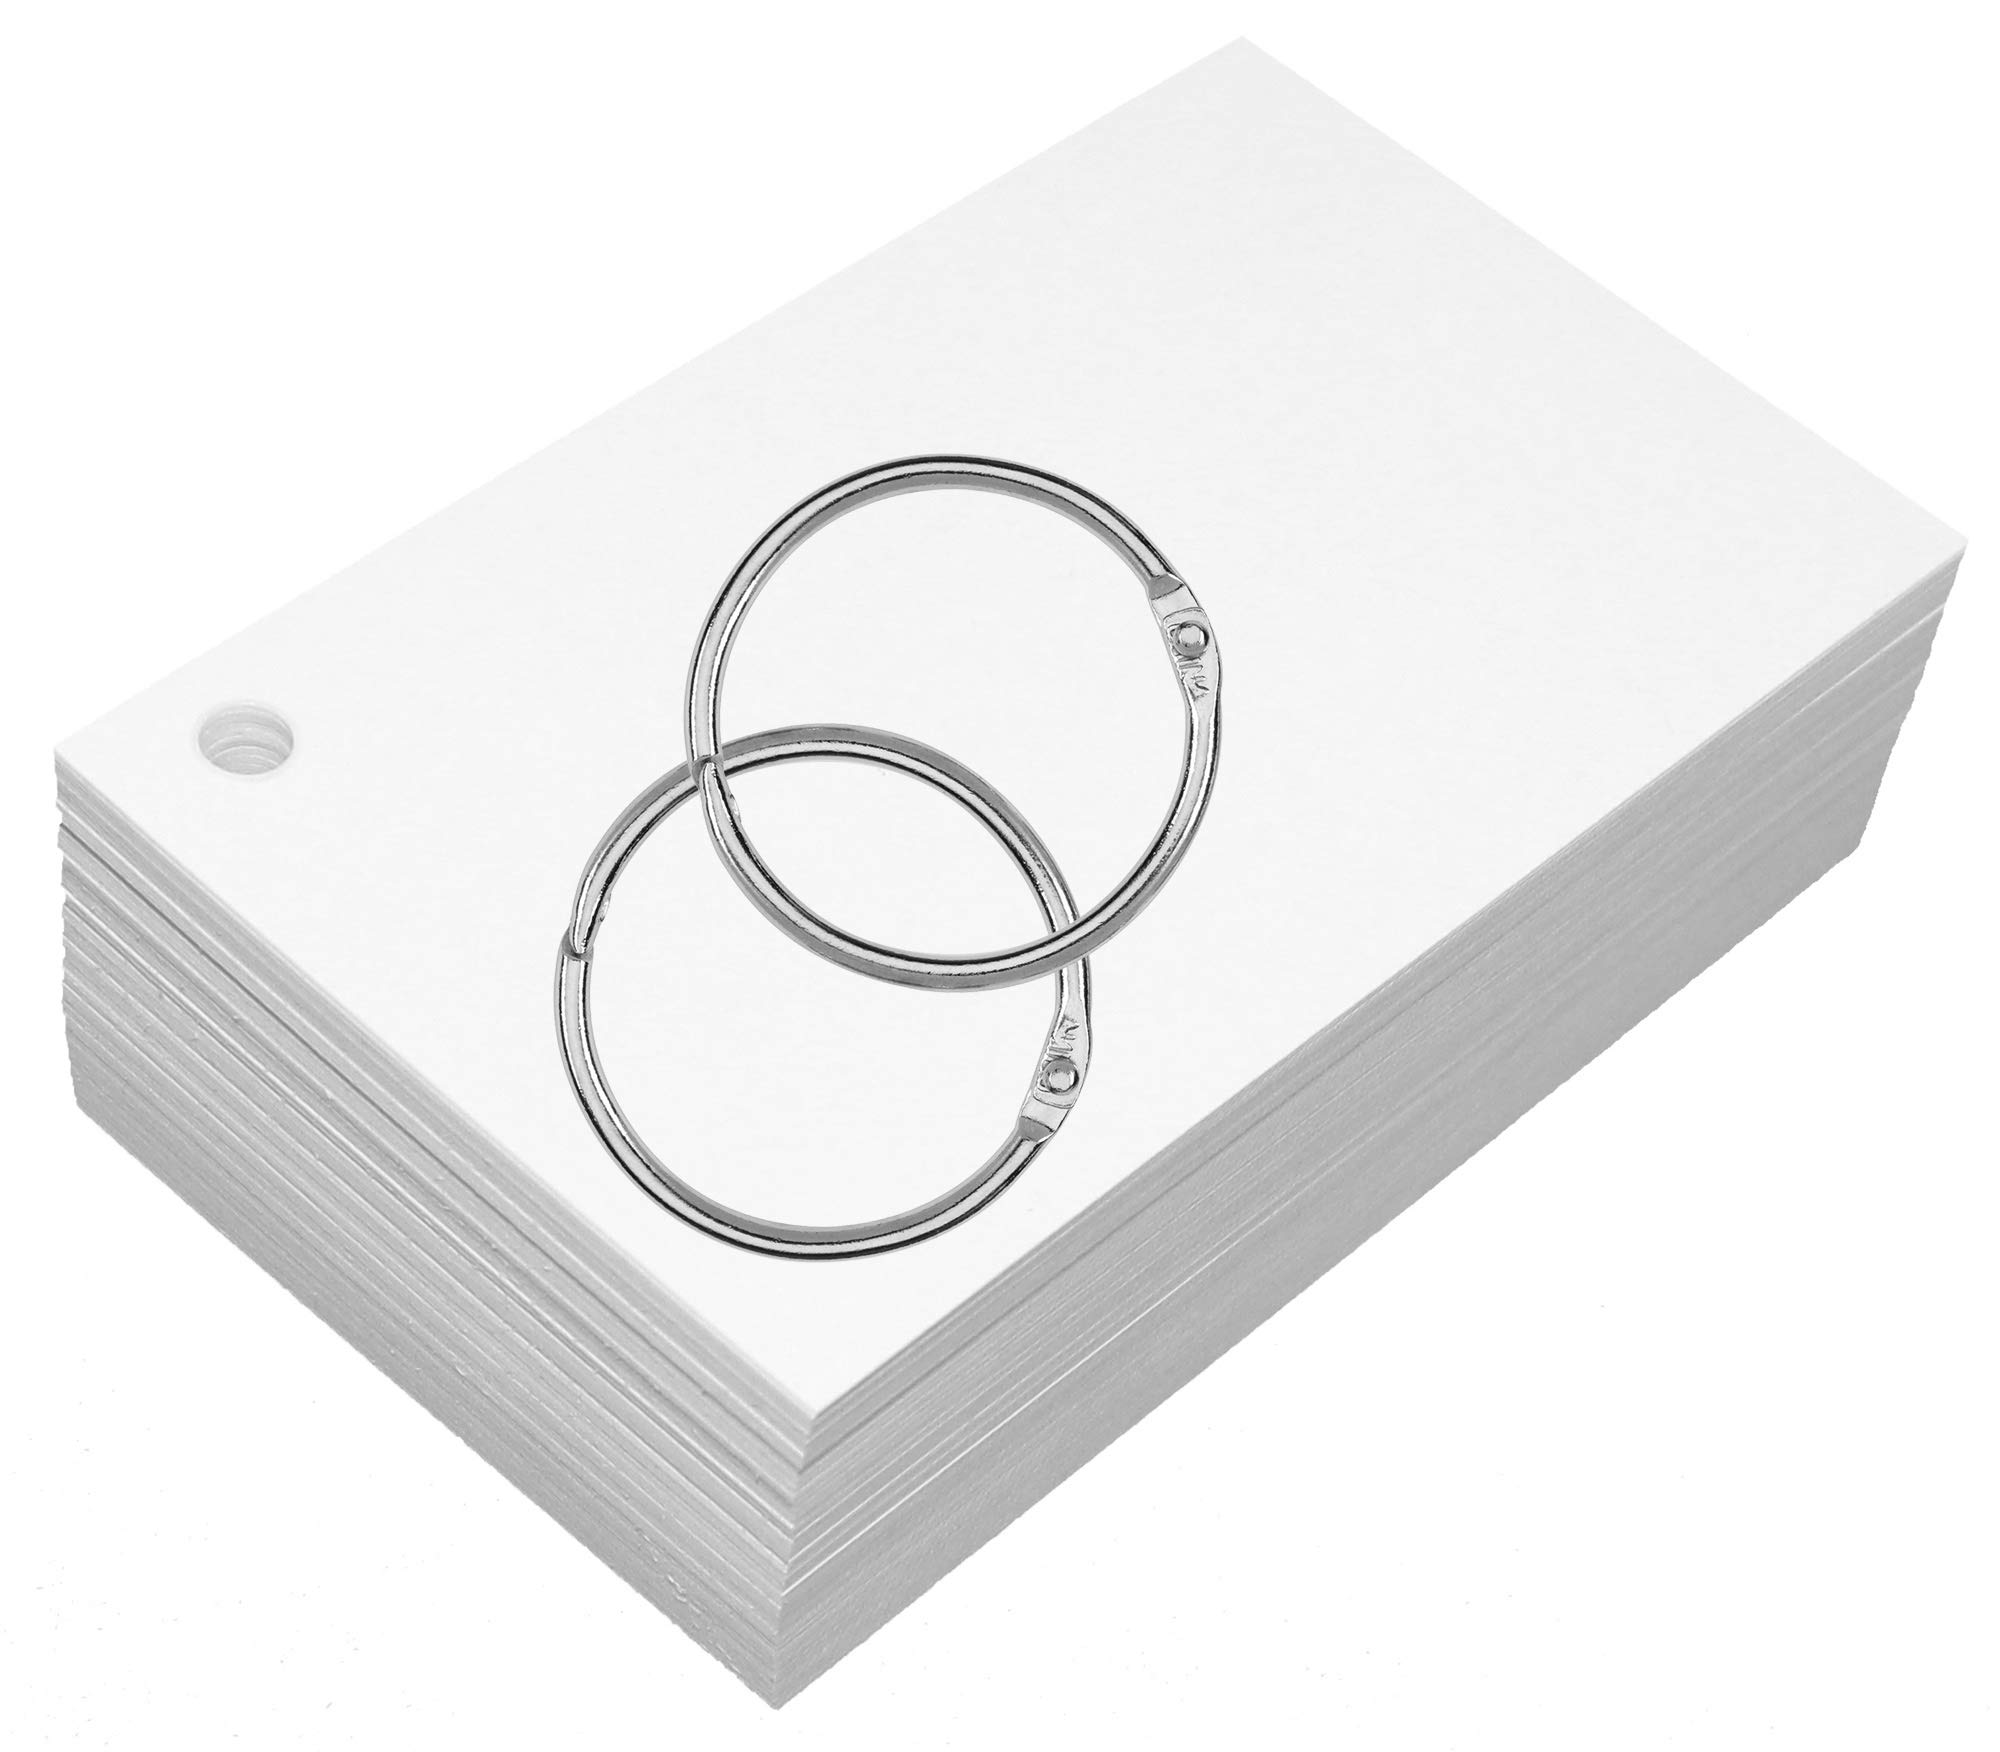 Debra Dale Designs Premium Blank Unruled White 200# Hole Punched with 2 Rings. Extra Thick - Super Heavy 3'' x 5'' Ringed Index Cards. 1 Package of 100. The Thickest CurrentlyAvailable on Amazon. by DEBRADALE DESIGNS